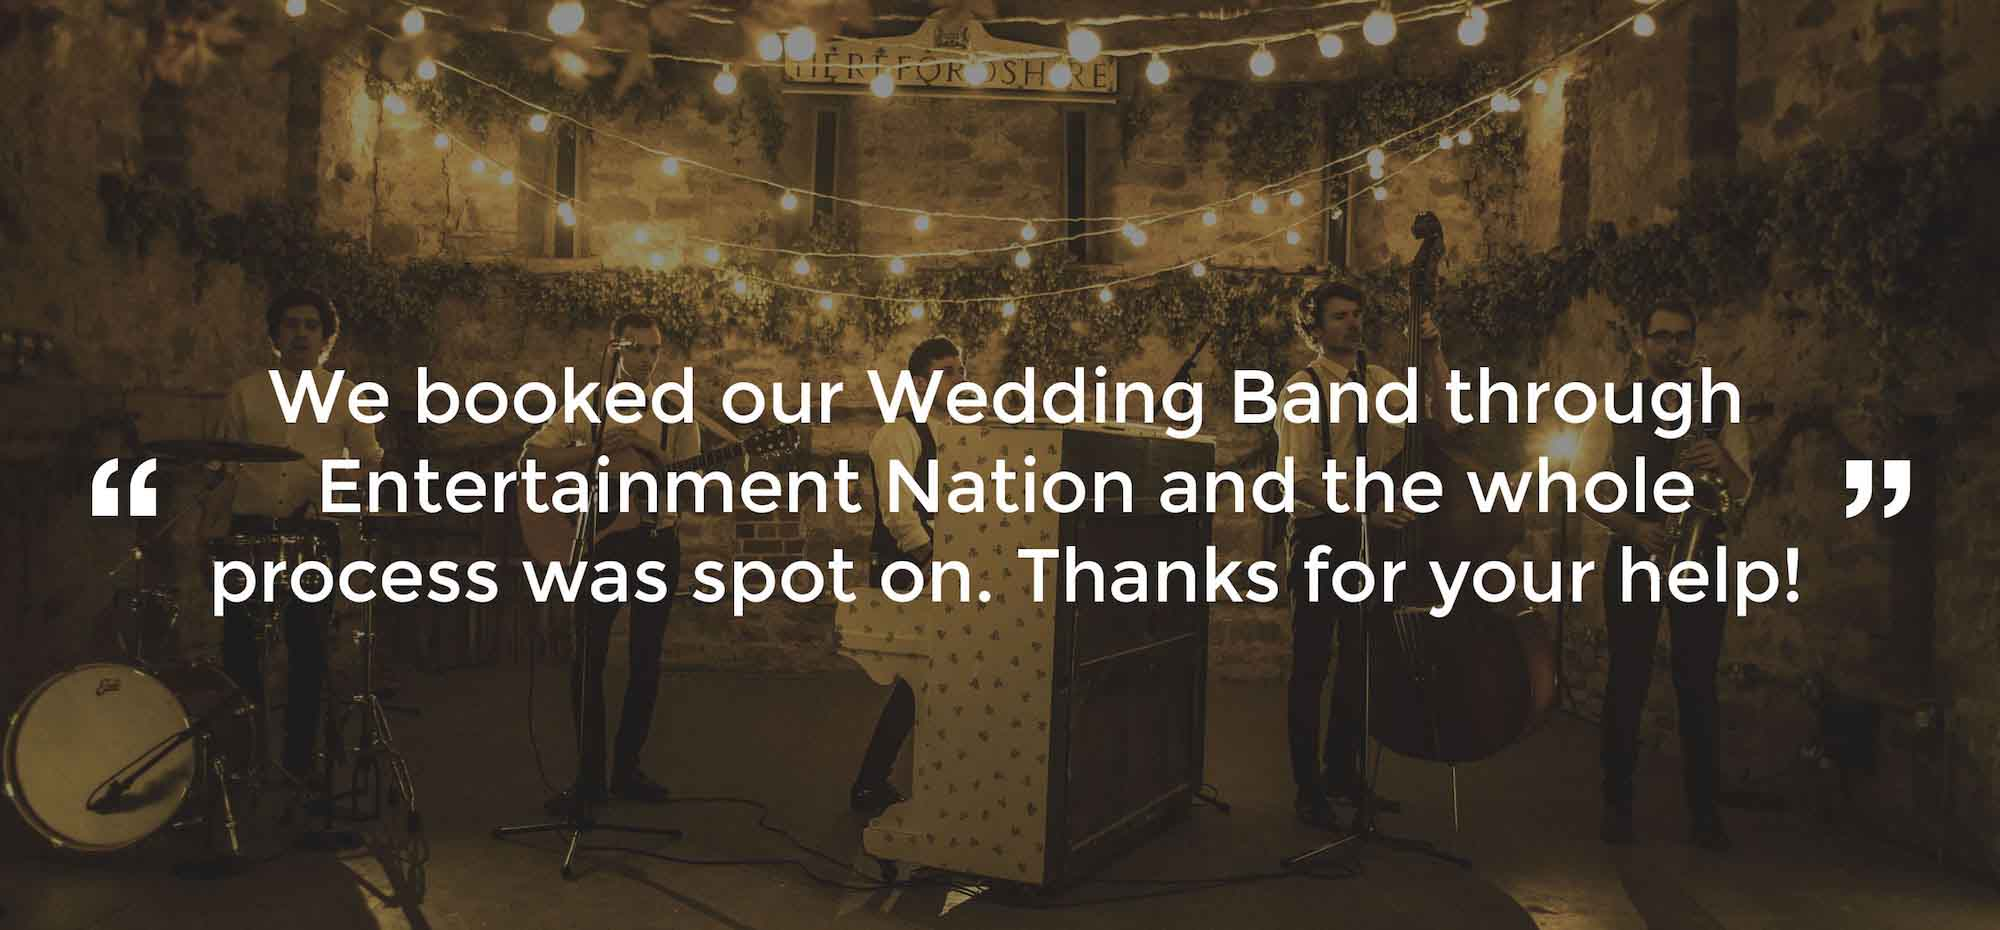 Client Review of a Wedding Band London